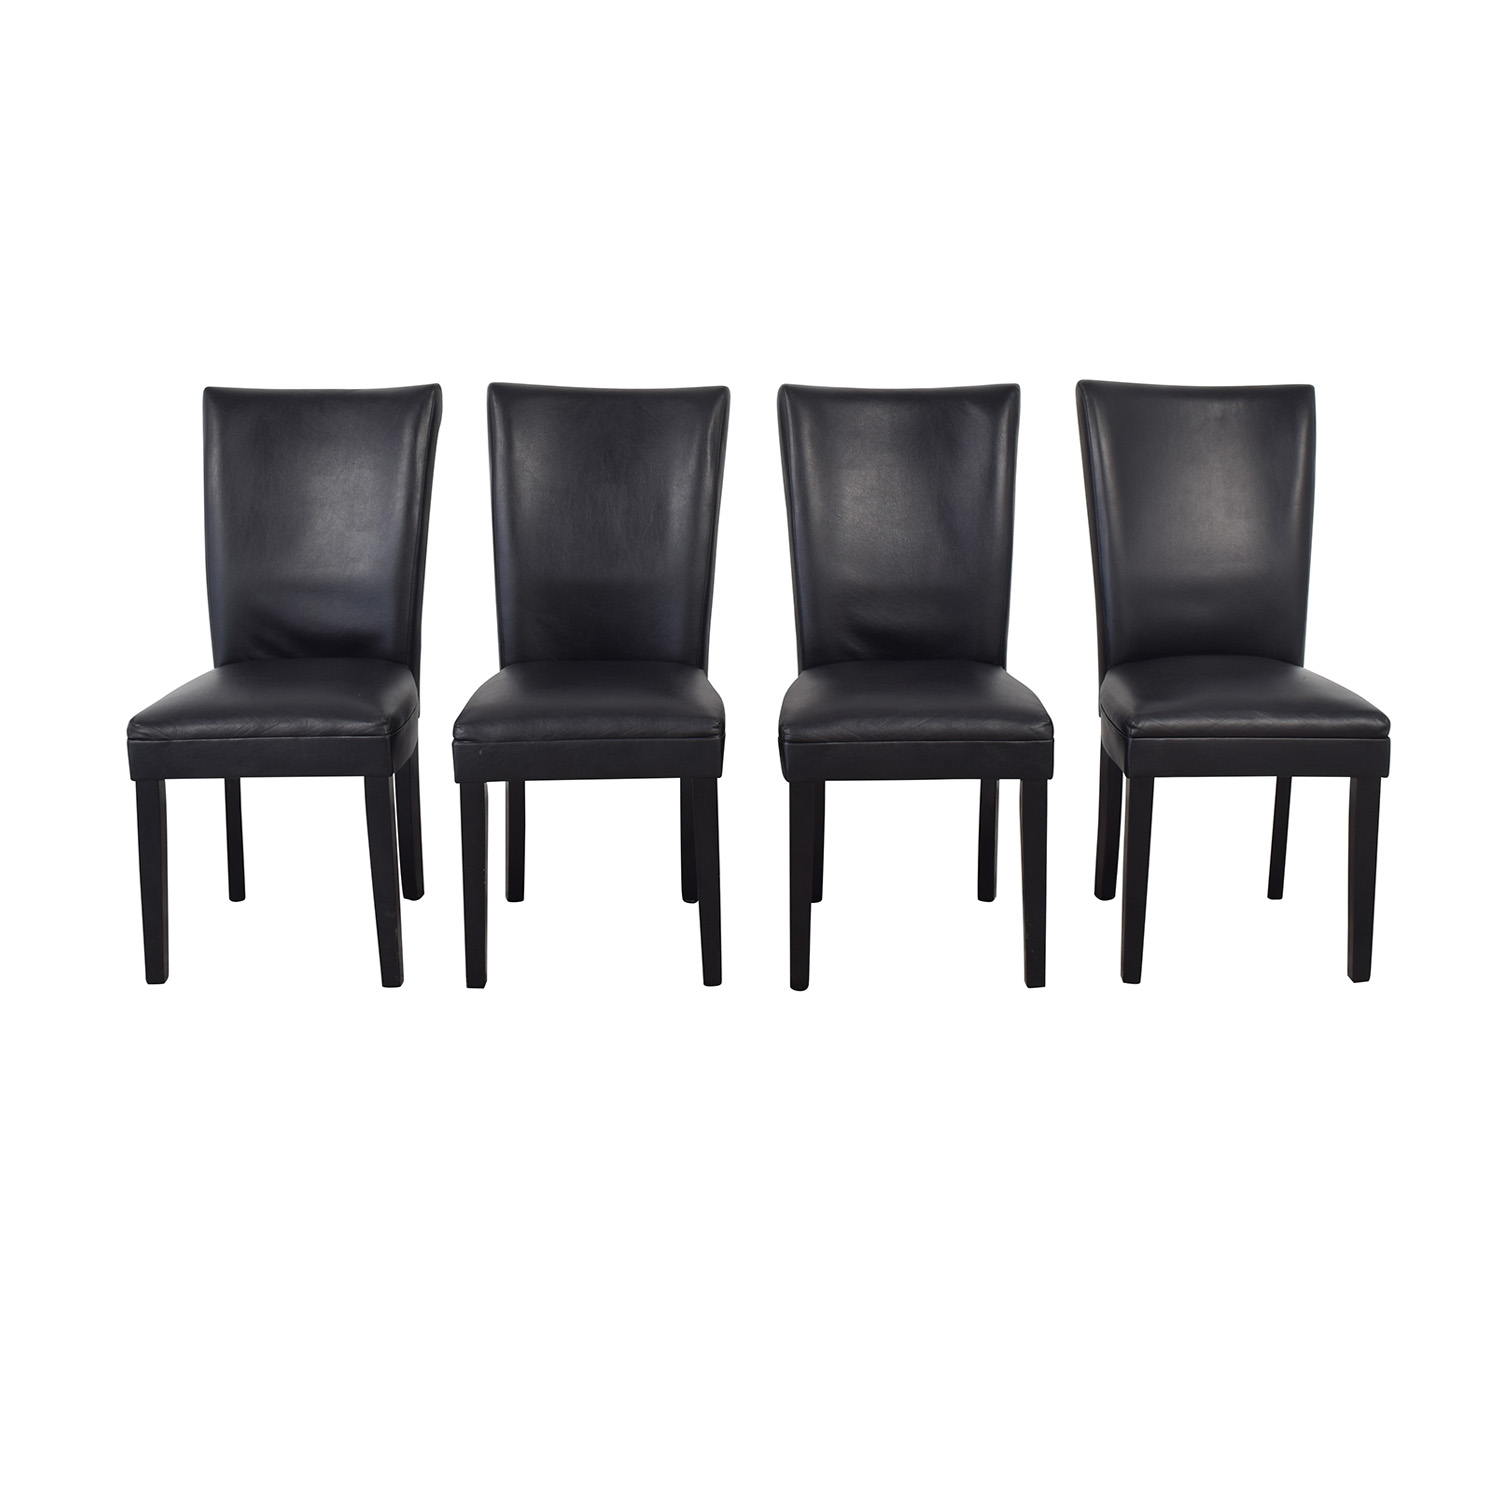 buy Steve Silver Co Dining Chairs Steve Silver Co Dining Chairs